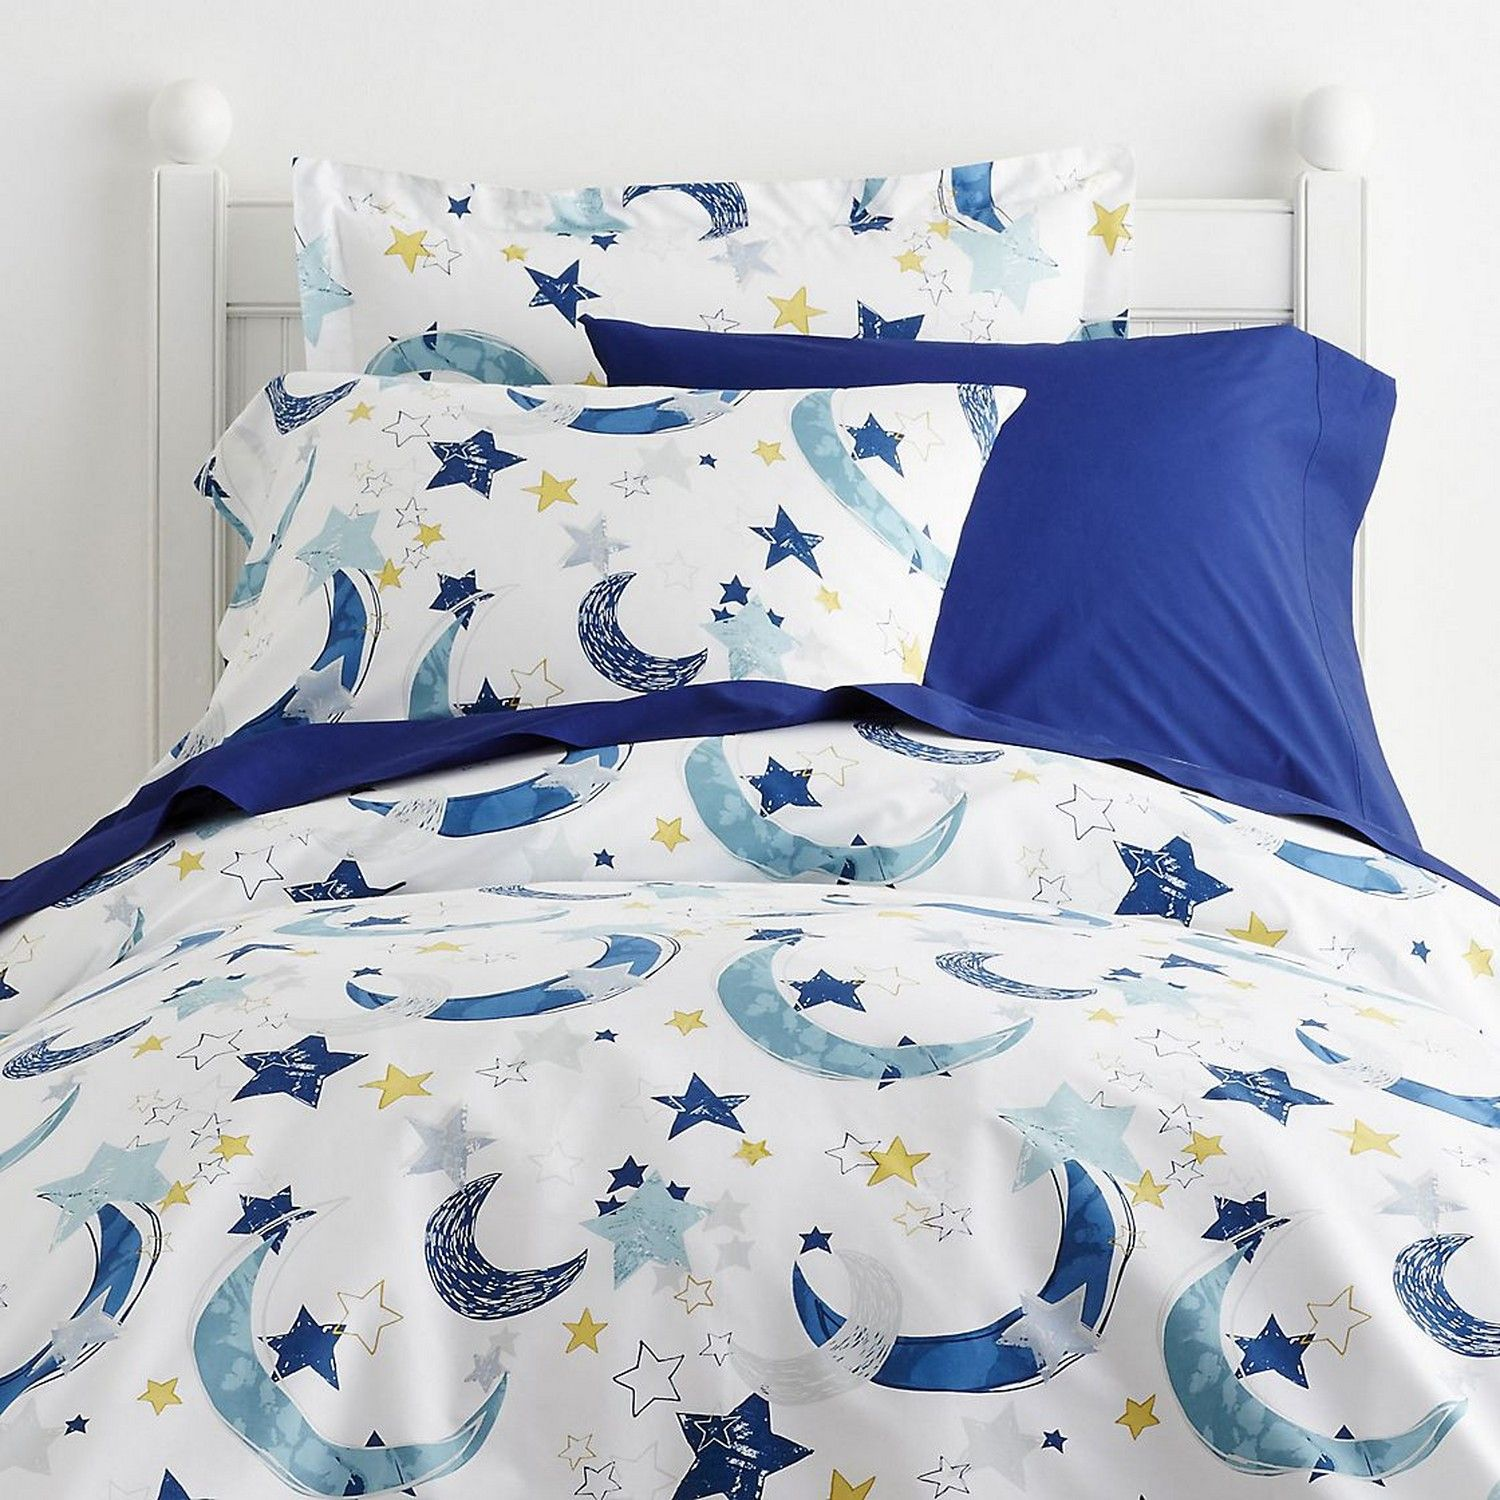 moon stars percale kids sheets bedding set company kids